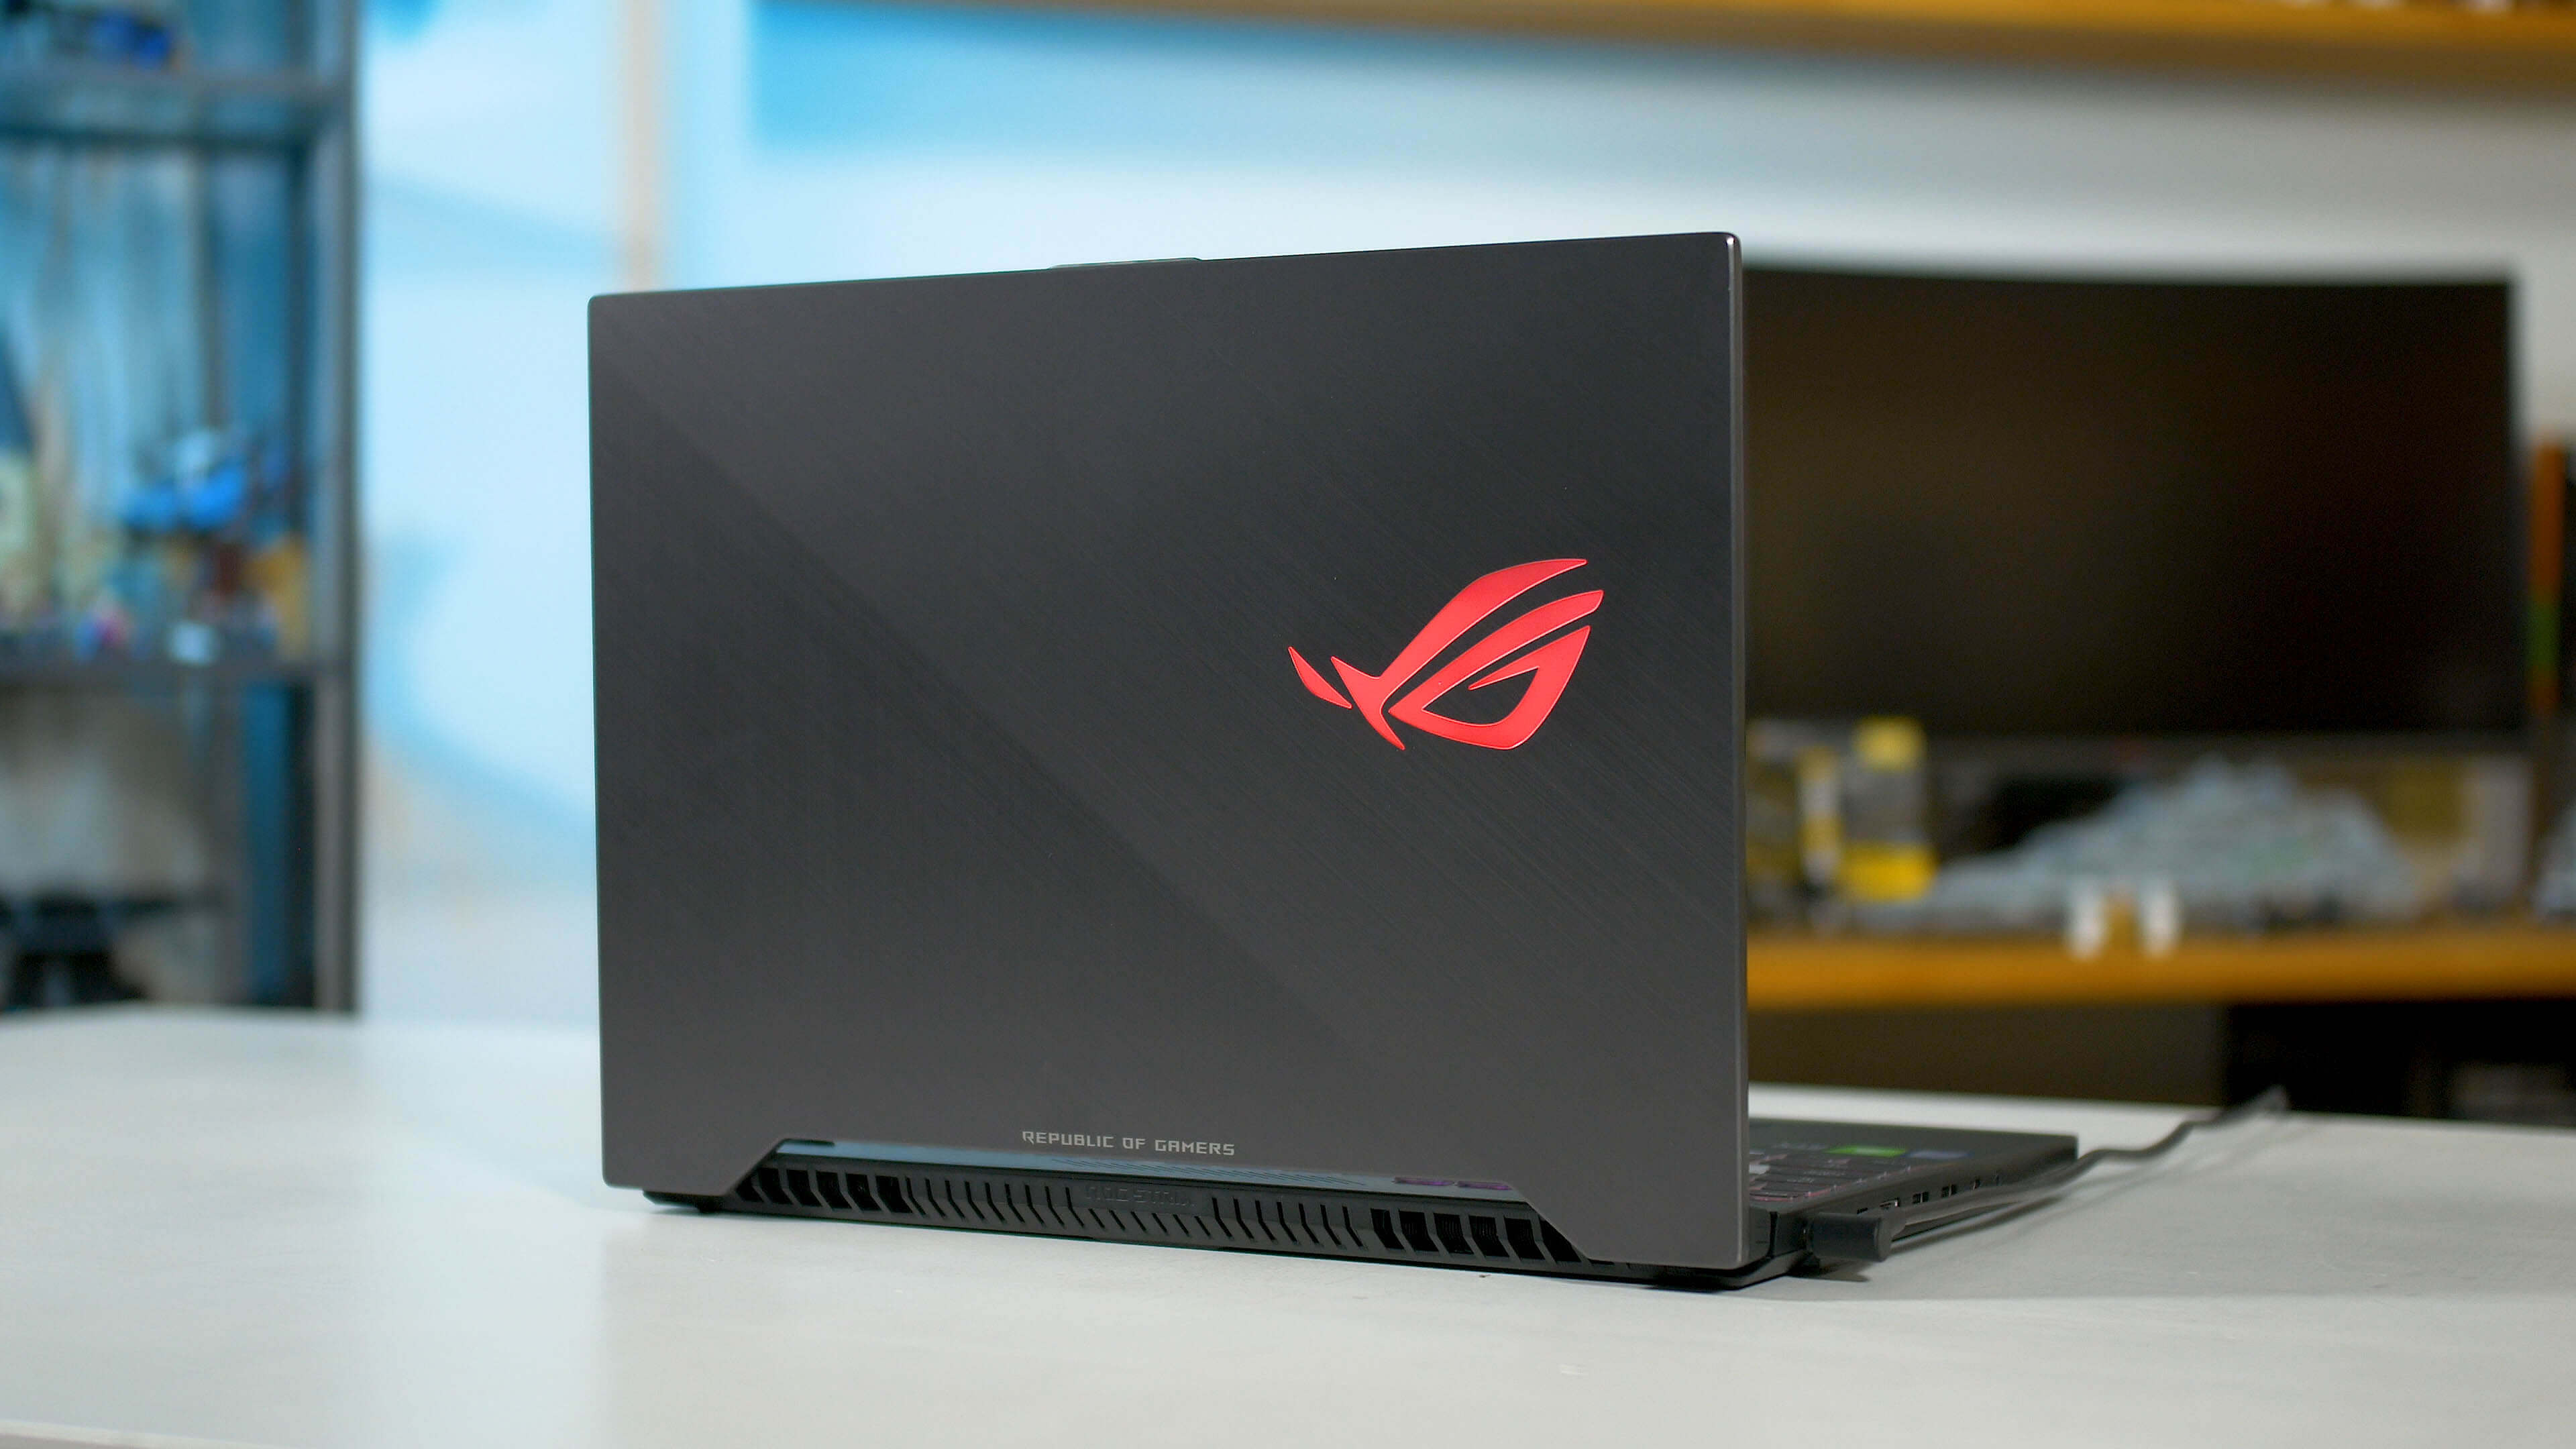 45358f9c3a68 Asus ROG Strix Scar II Gaming Laptop Review - TechSpot